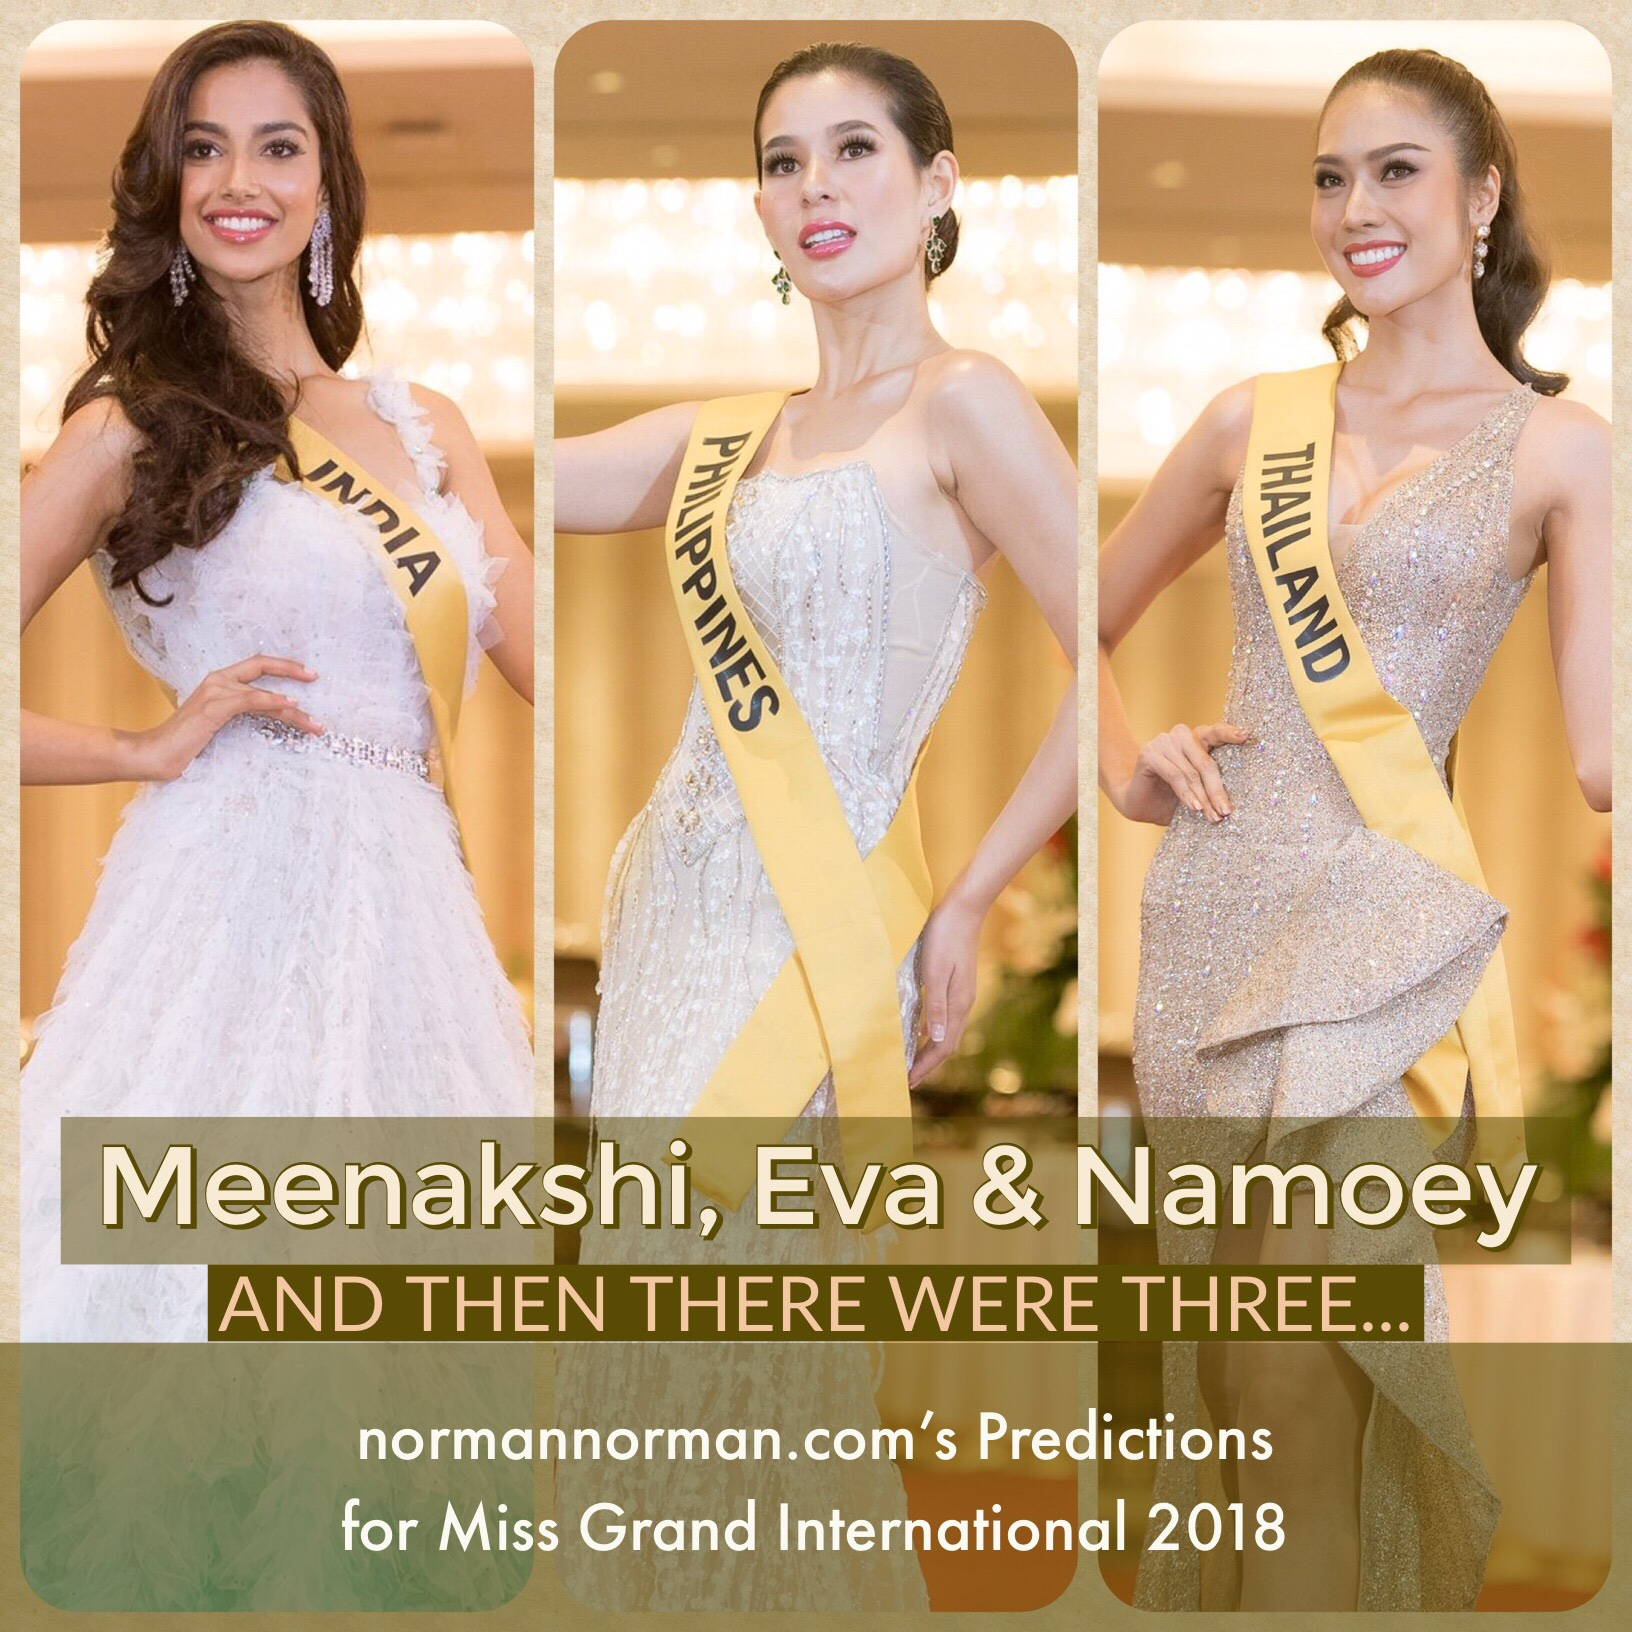 normannorman com's Top 10 Predictions for Miss Grand